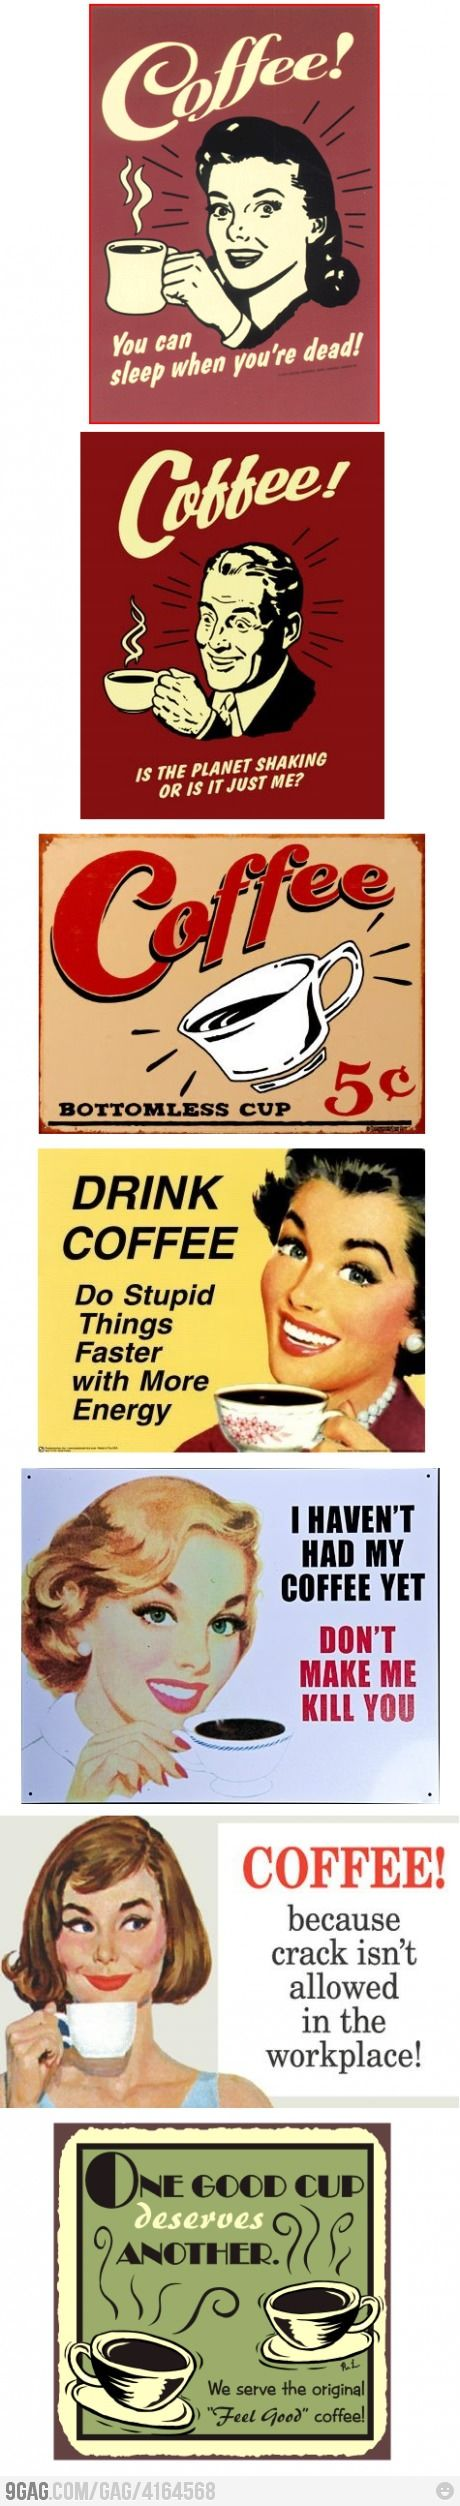 If they ever outlaw caffeine I'll be in jail for life.